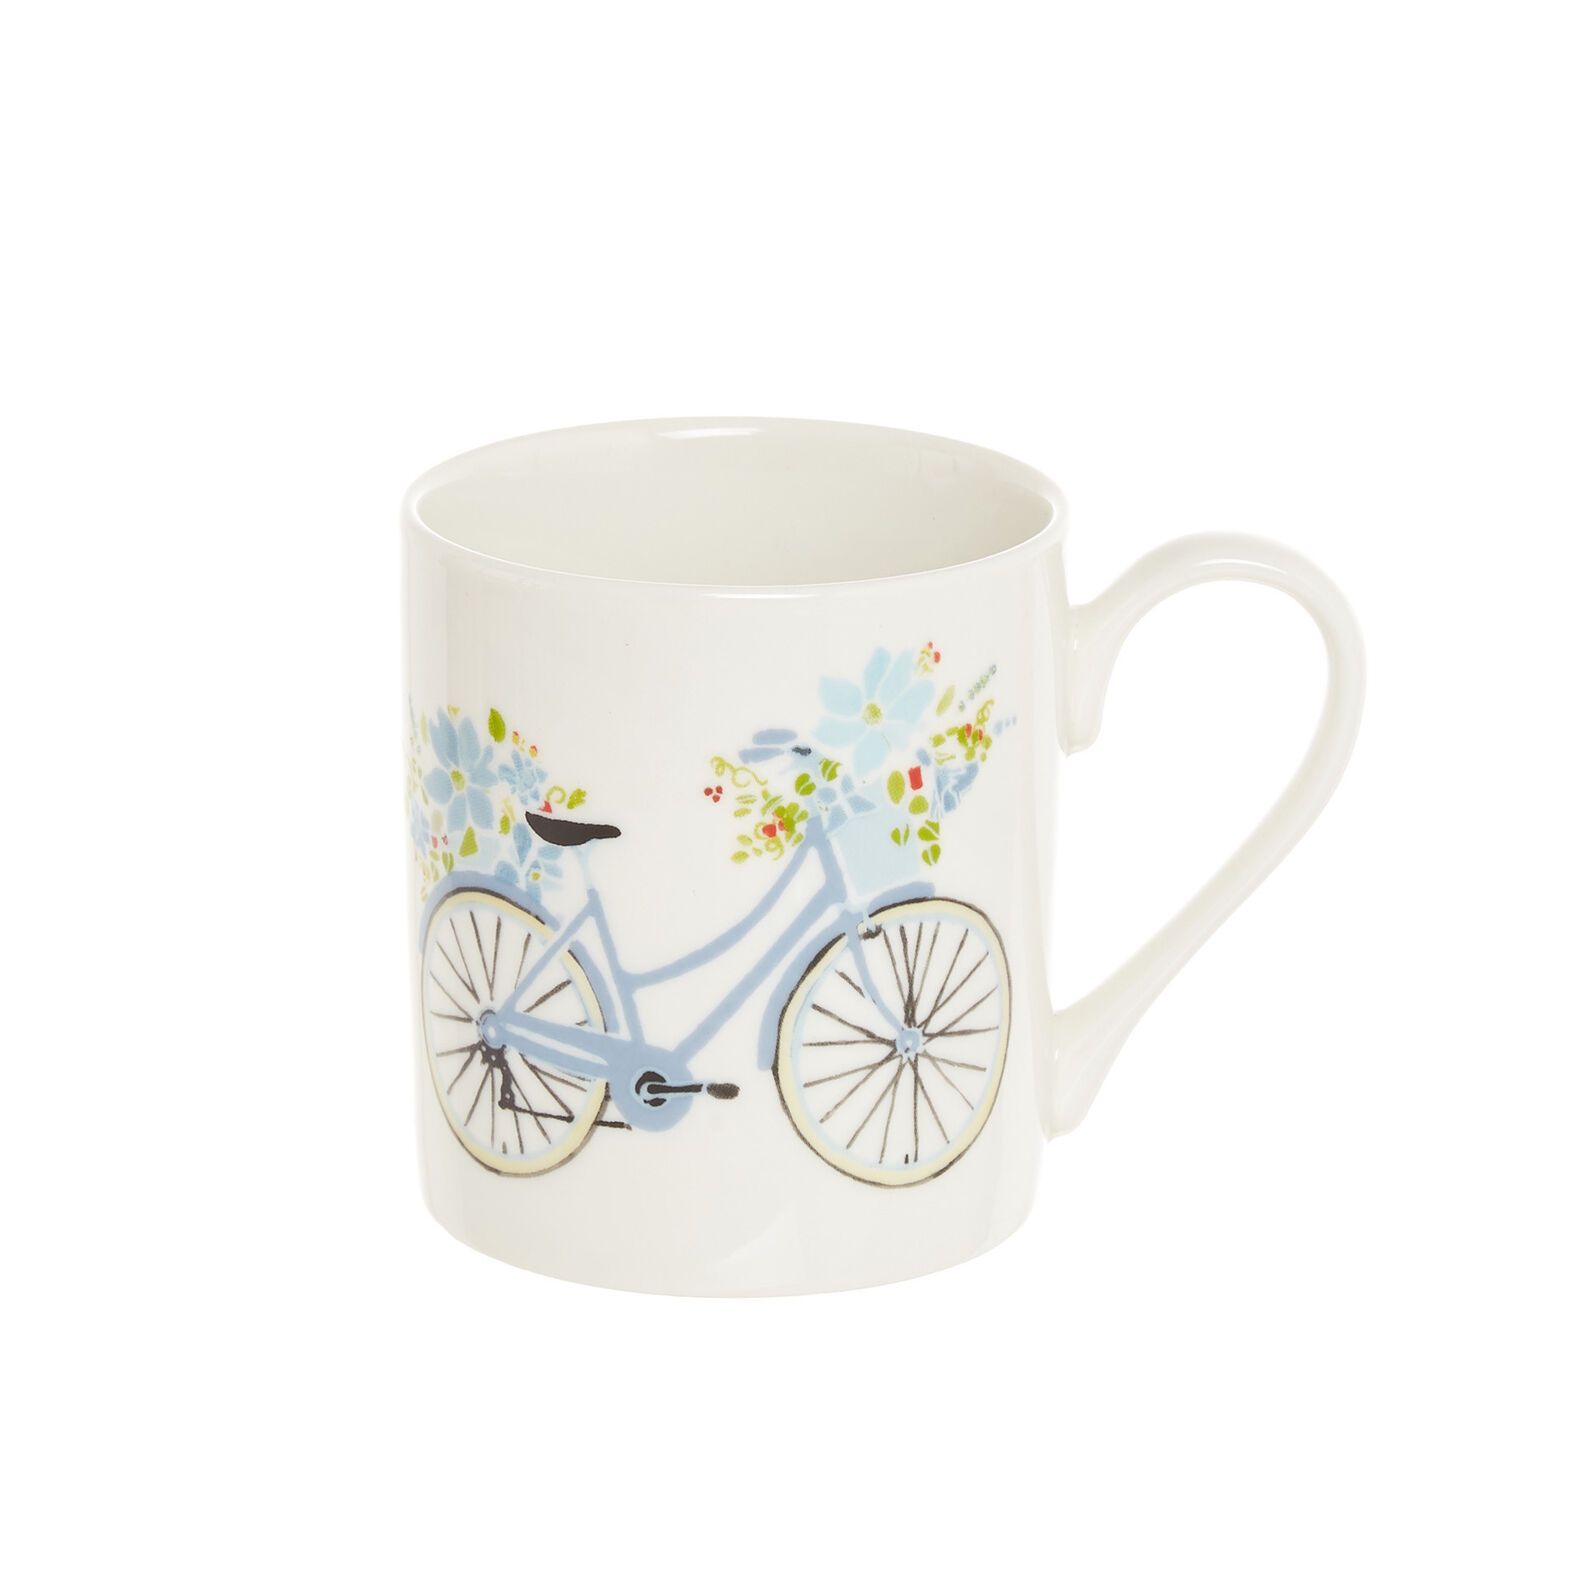 Mug in fine bone China with bikes motif